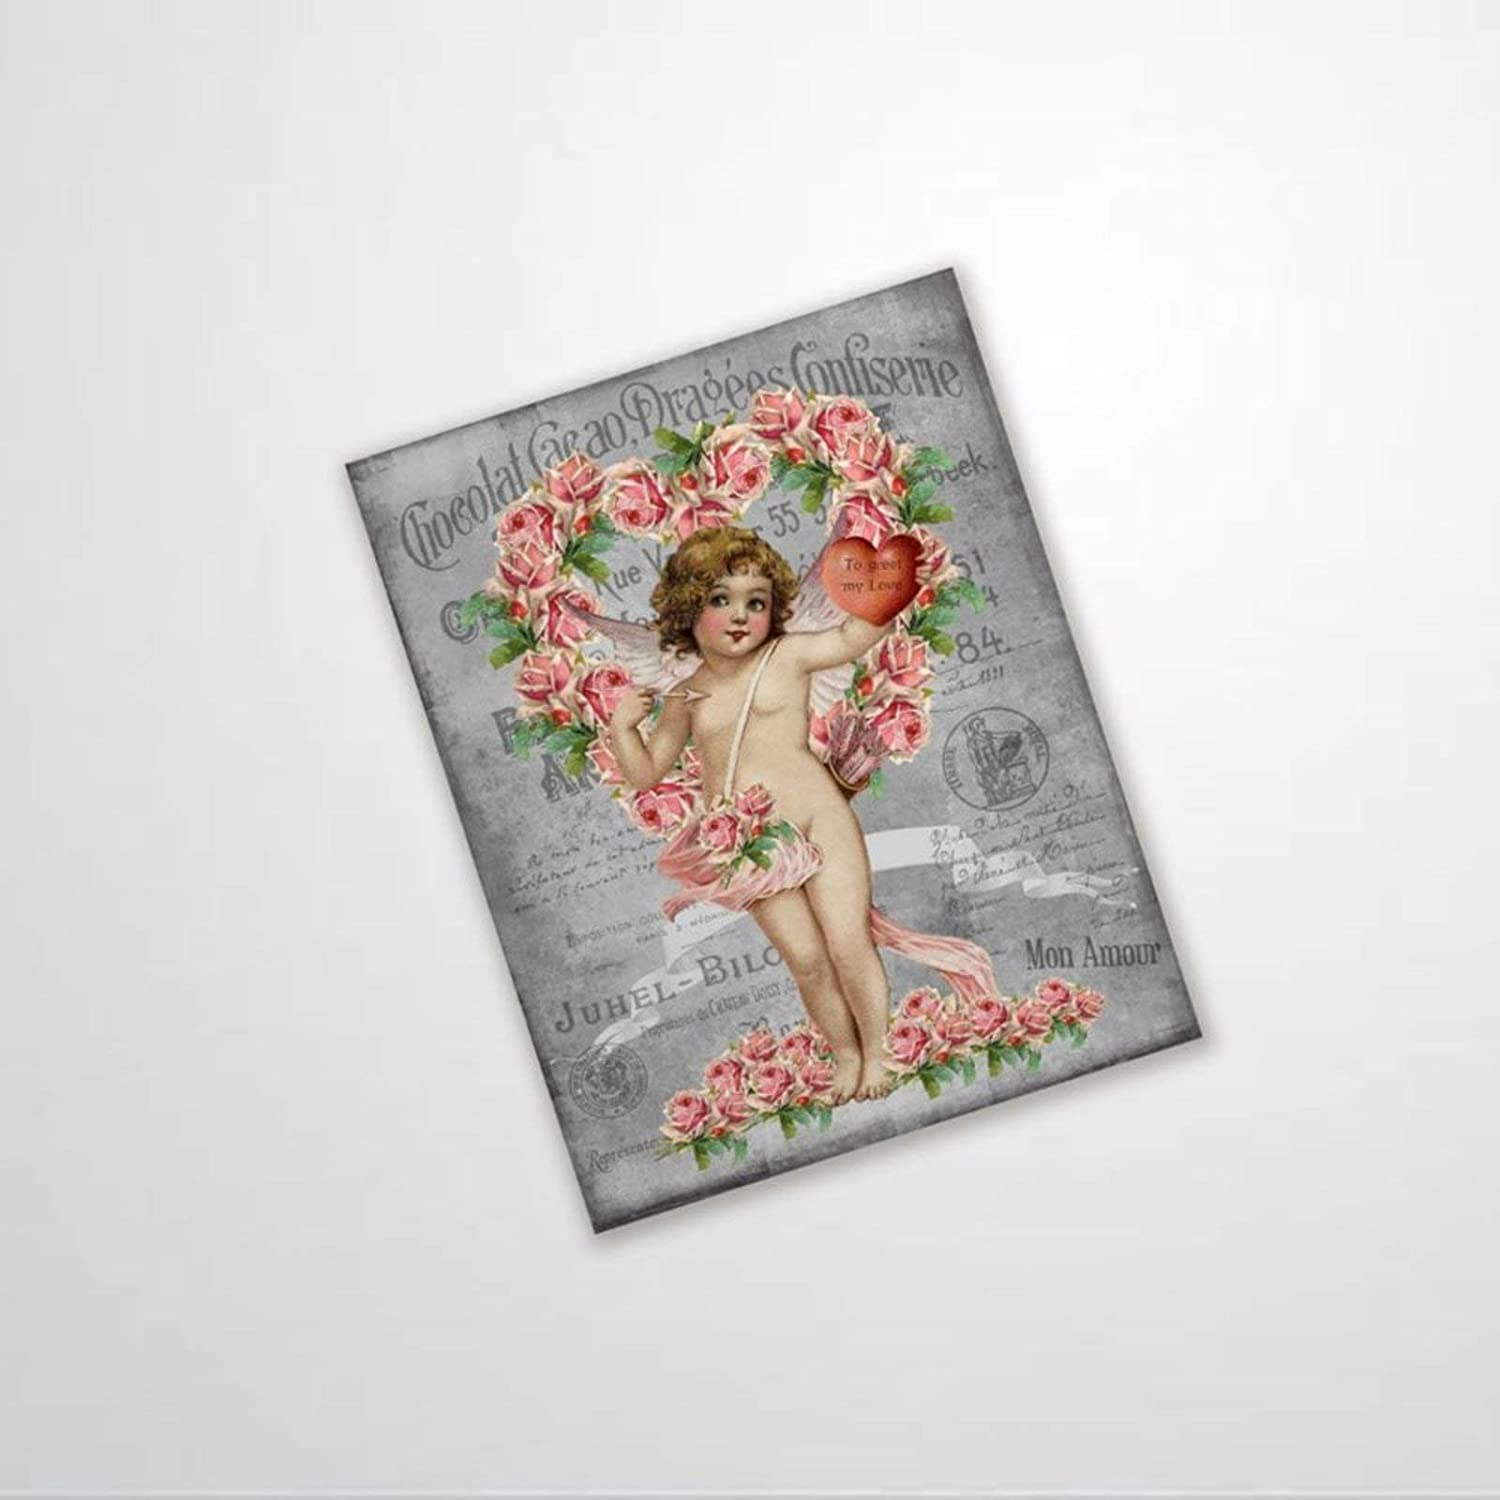 BYRON HOYLE French Valentine's Cupid Metal Sign,Vintage Tin Plaque,Yard Sign Wall Hanging Art,Rustic Wall Decor for Home Garage Coffee Bar Pub Farmhouse Living Room